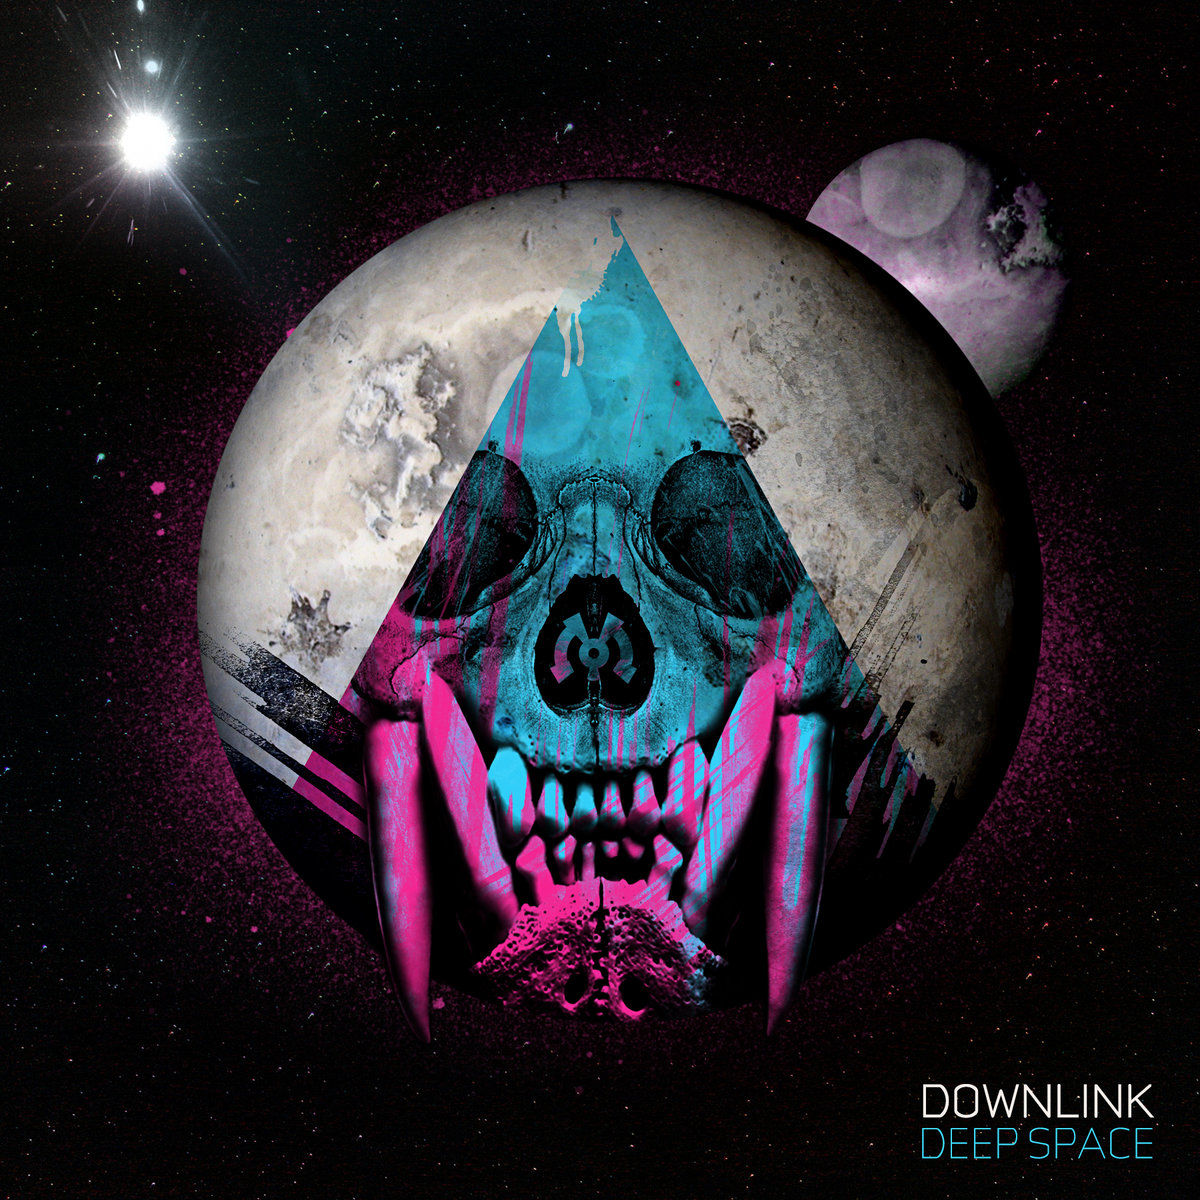 Downlink - Deep Space (Stagga Remix) @ 'Deep Space' album (electronic, dubstep)